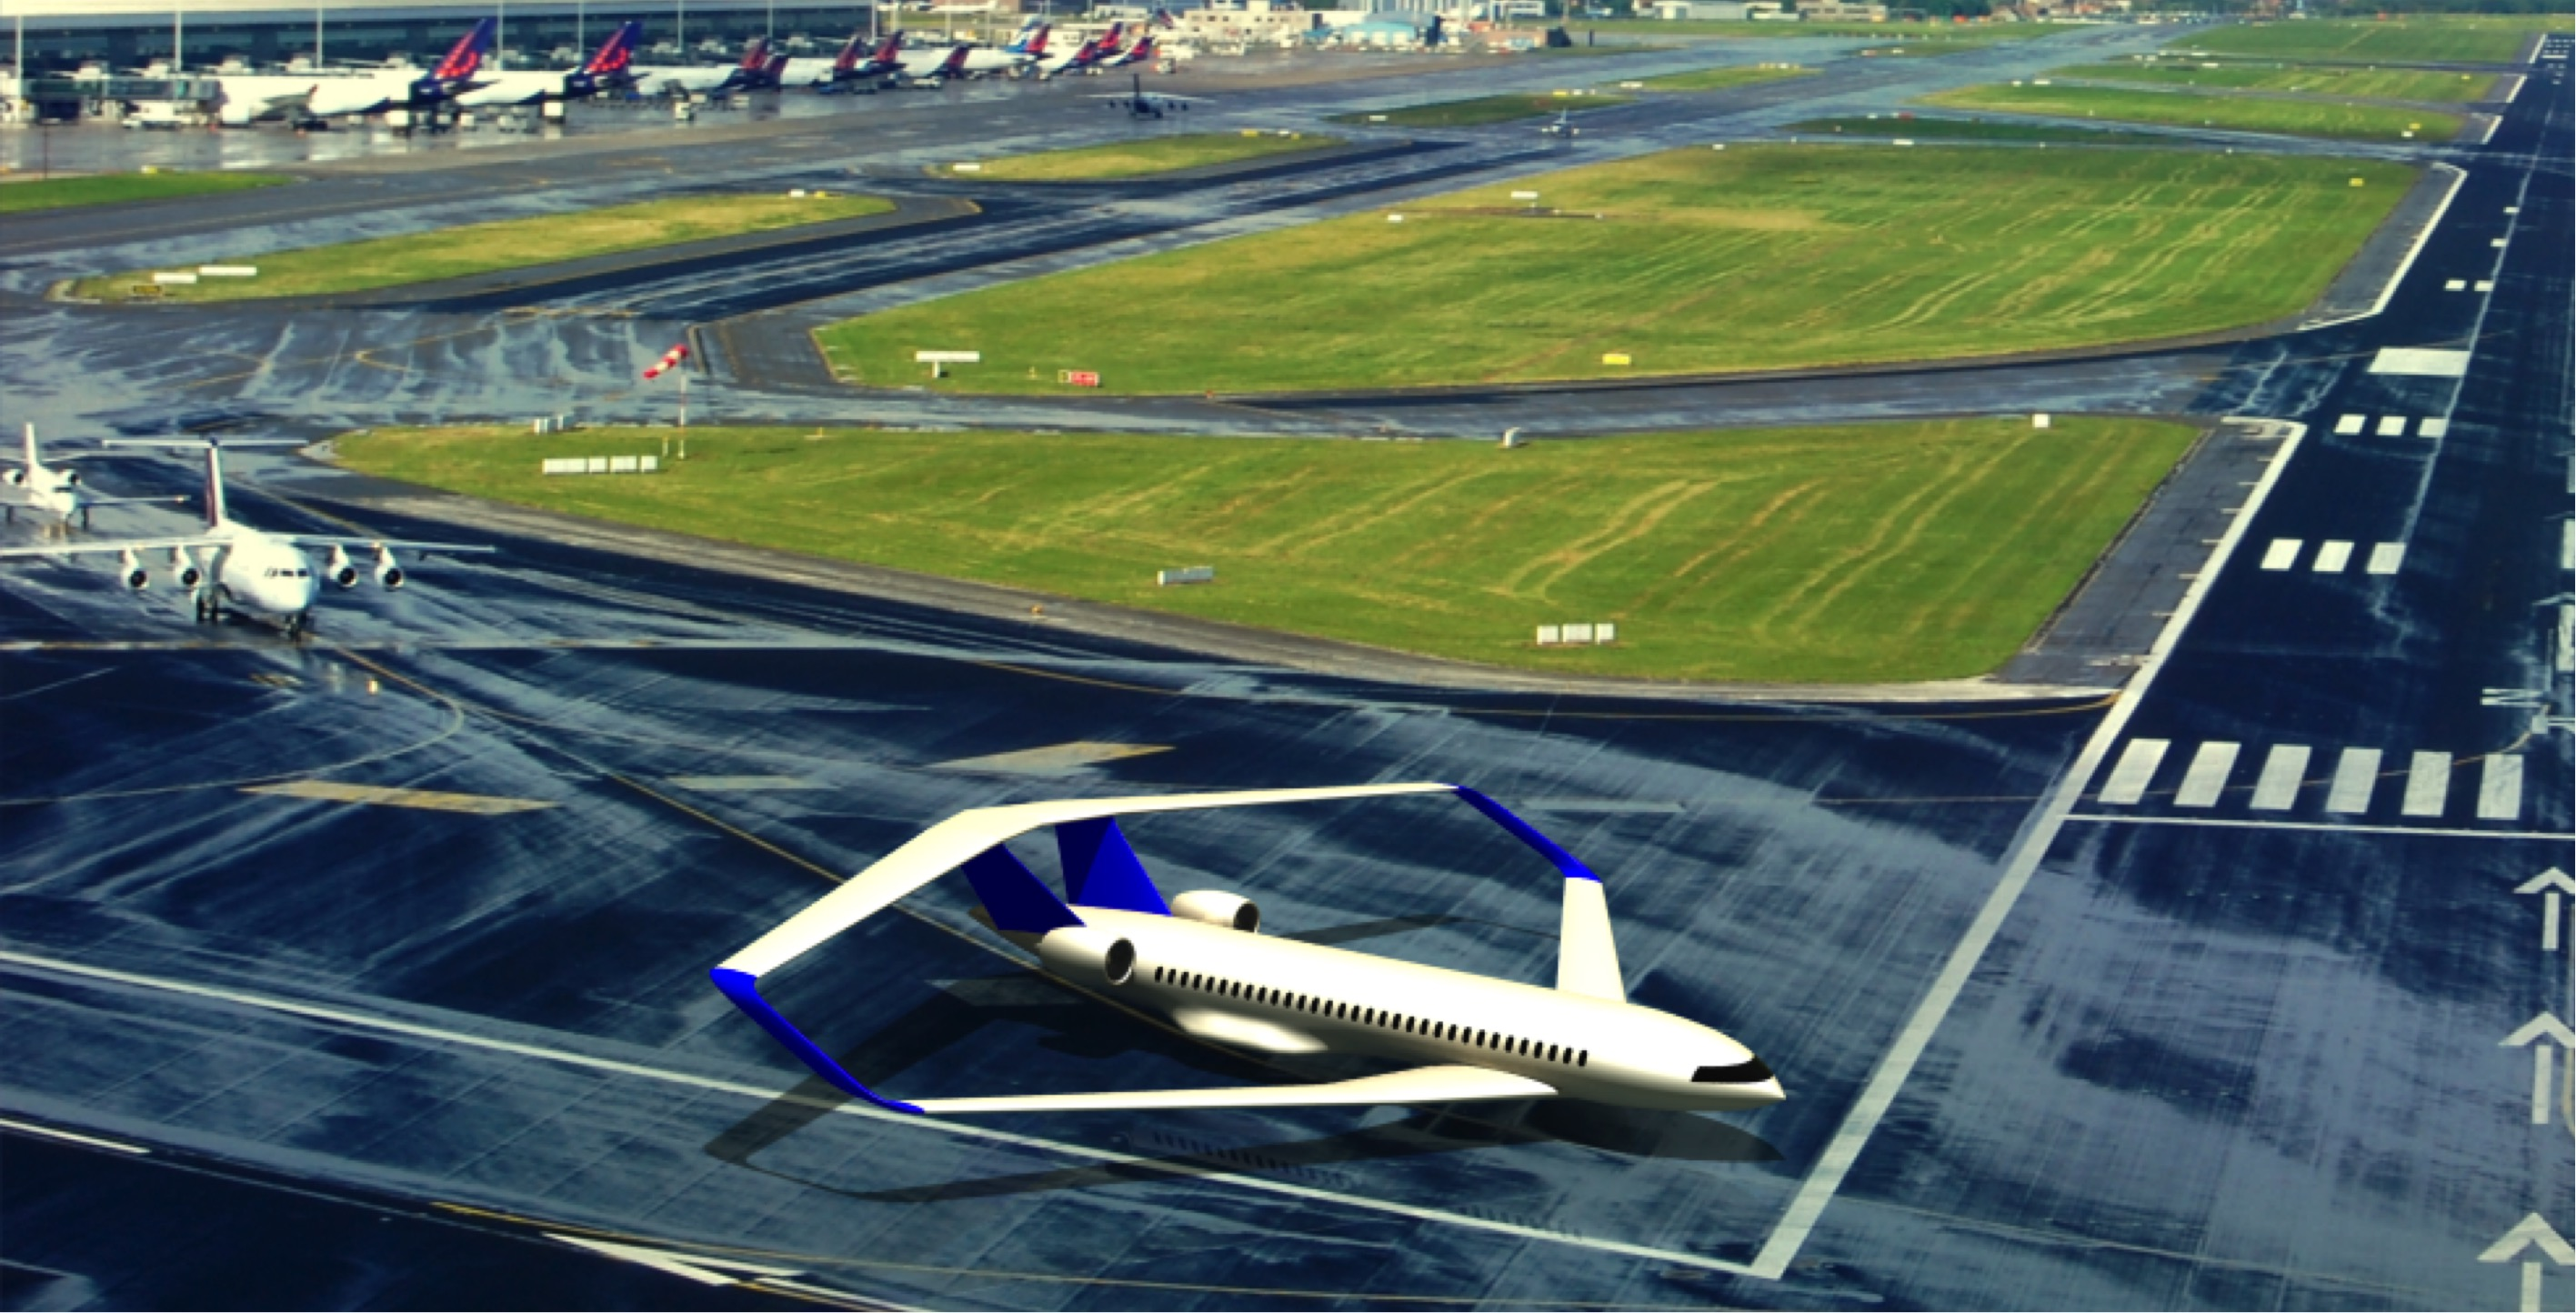 Scientists from European Union will change design of airplane's wing. Part 1